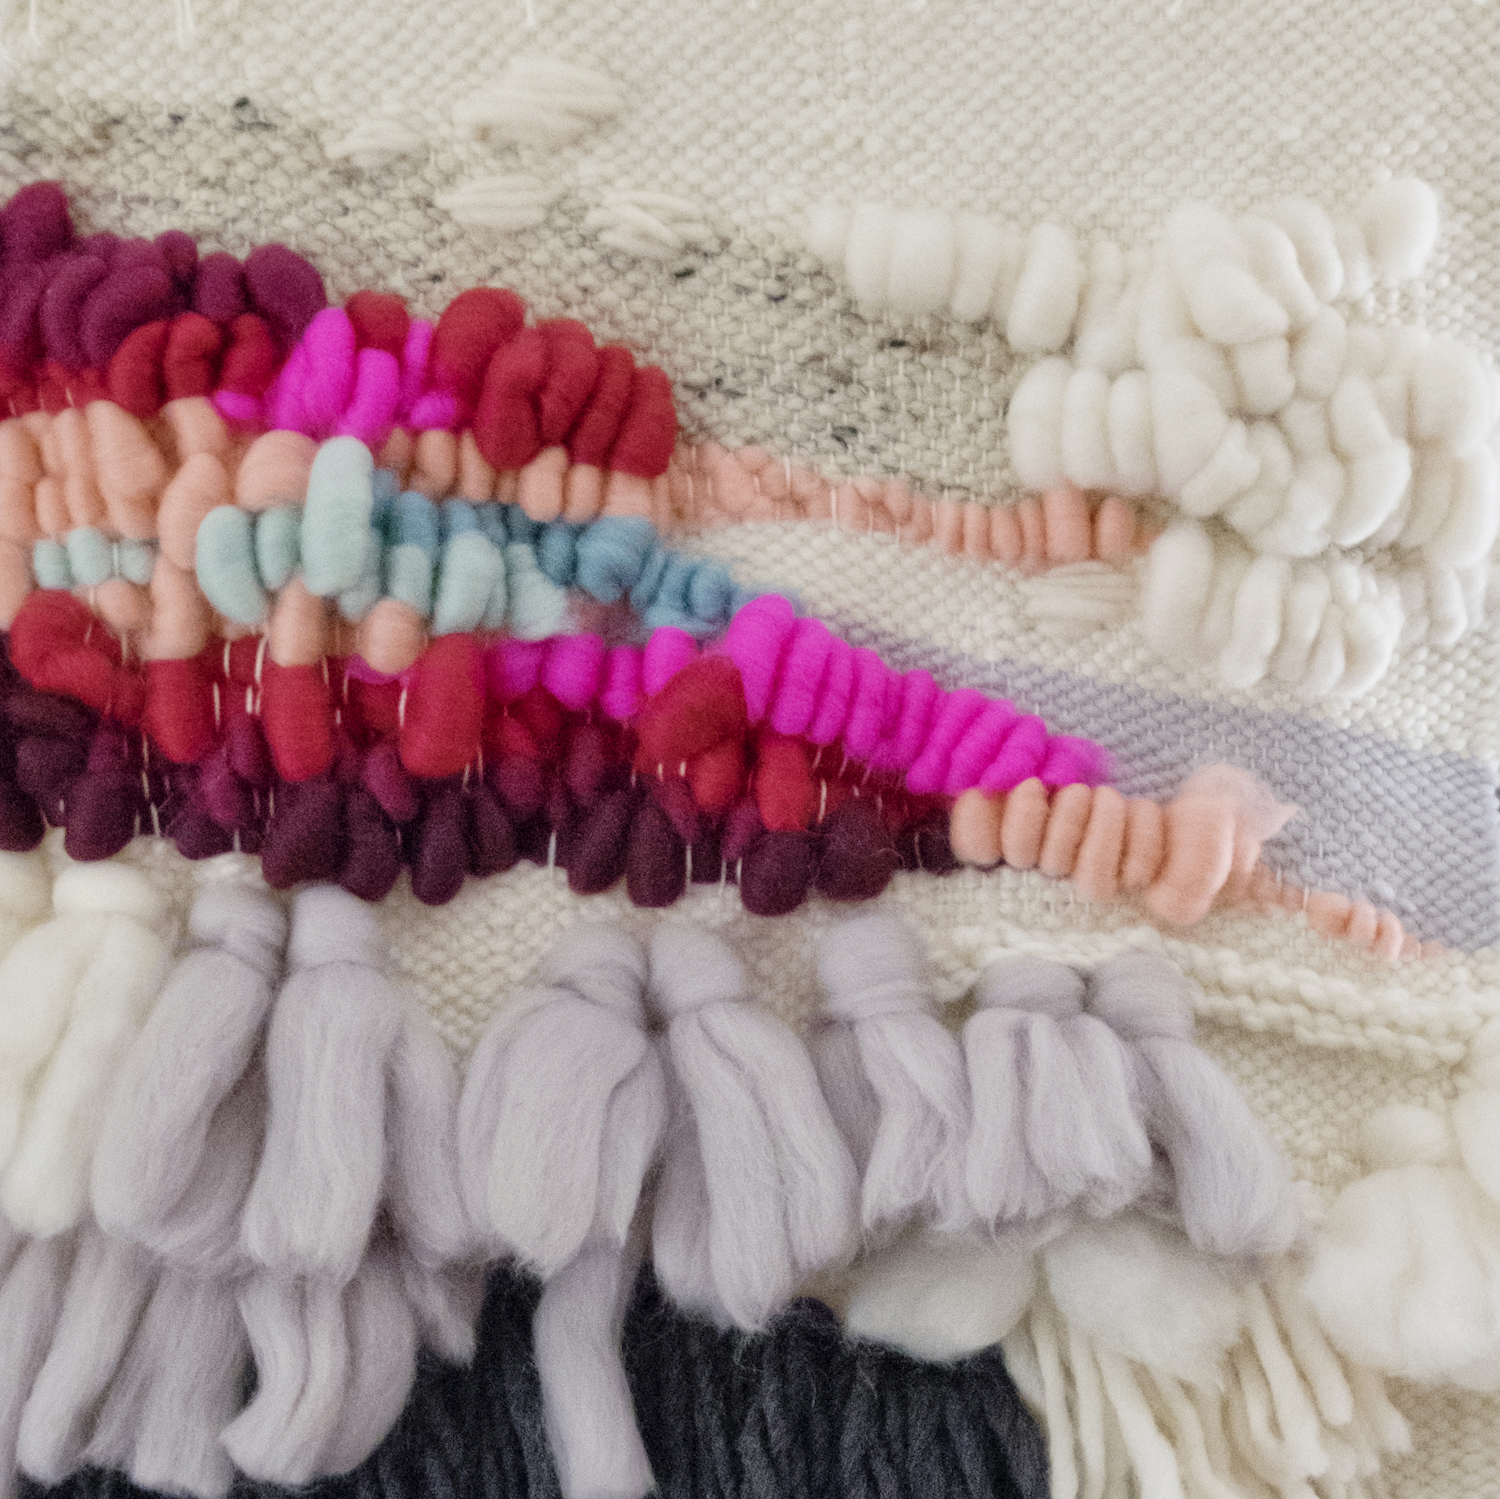 Weaving Techniques, Color Theory and Roving - instruction from Maryanne Moodie and Megan Schimek